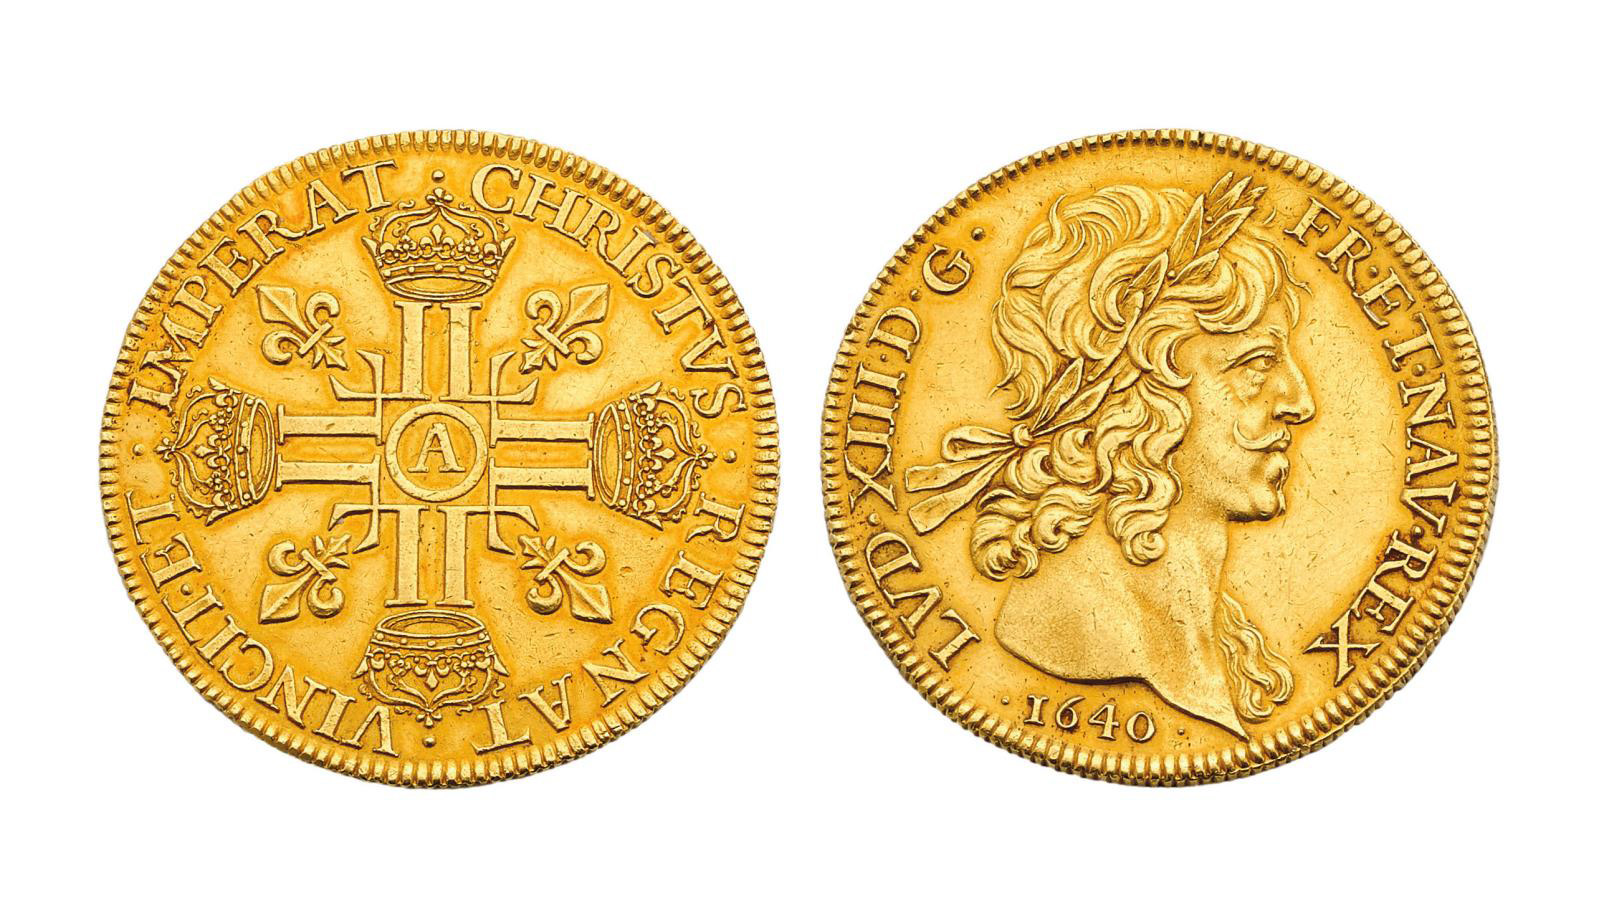 Eight louis d'or, 1640, a coin known as a tribute or pleasure coin, used at the King's gaming table.© Étude Fraysse